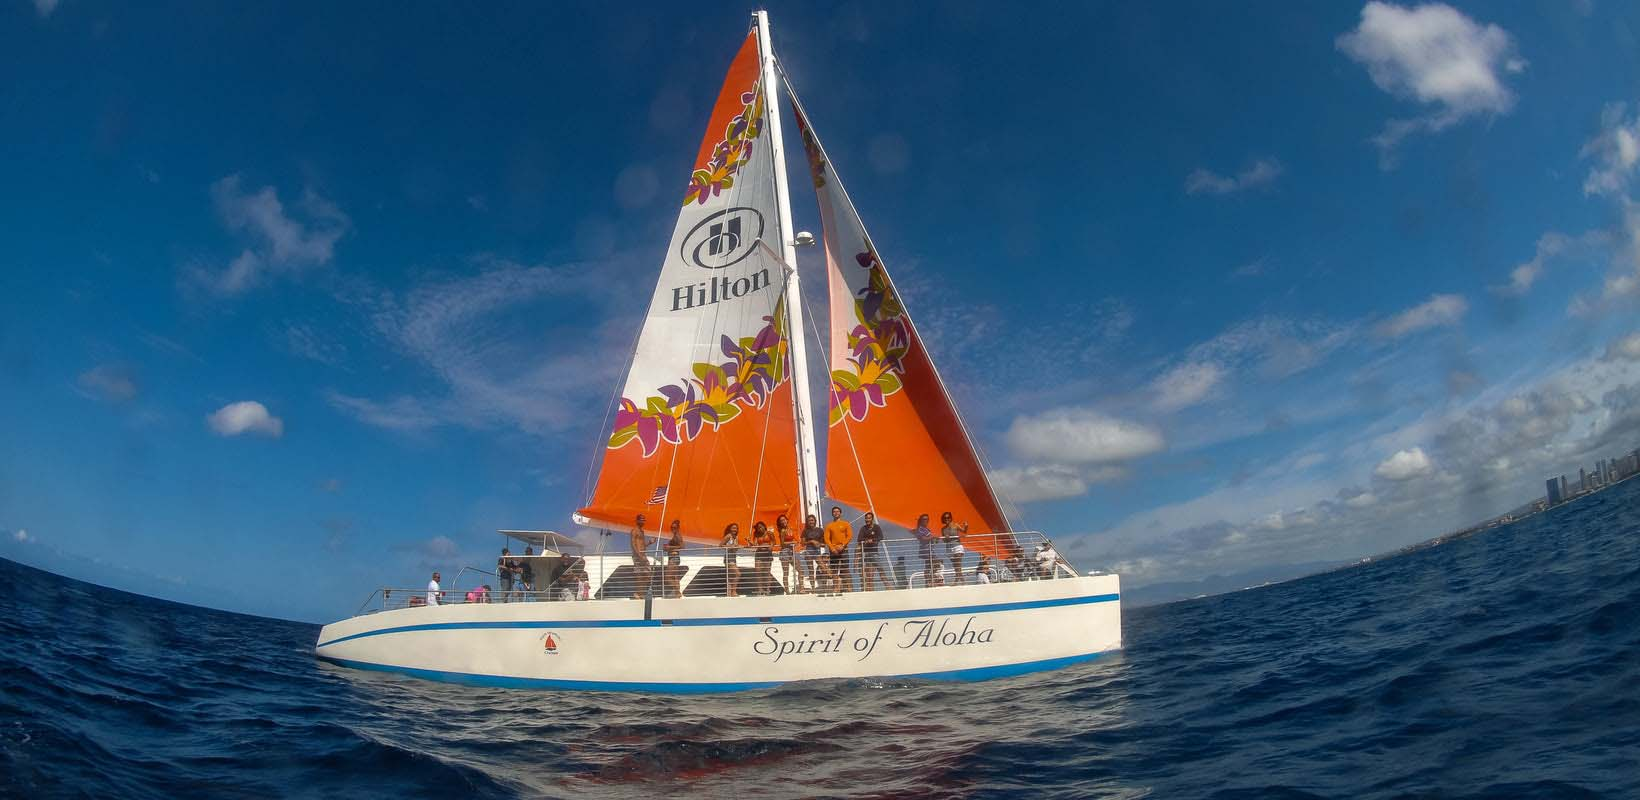 Hawaii Catamaran Sailing and Snorkeling Excursion